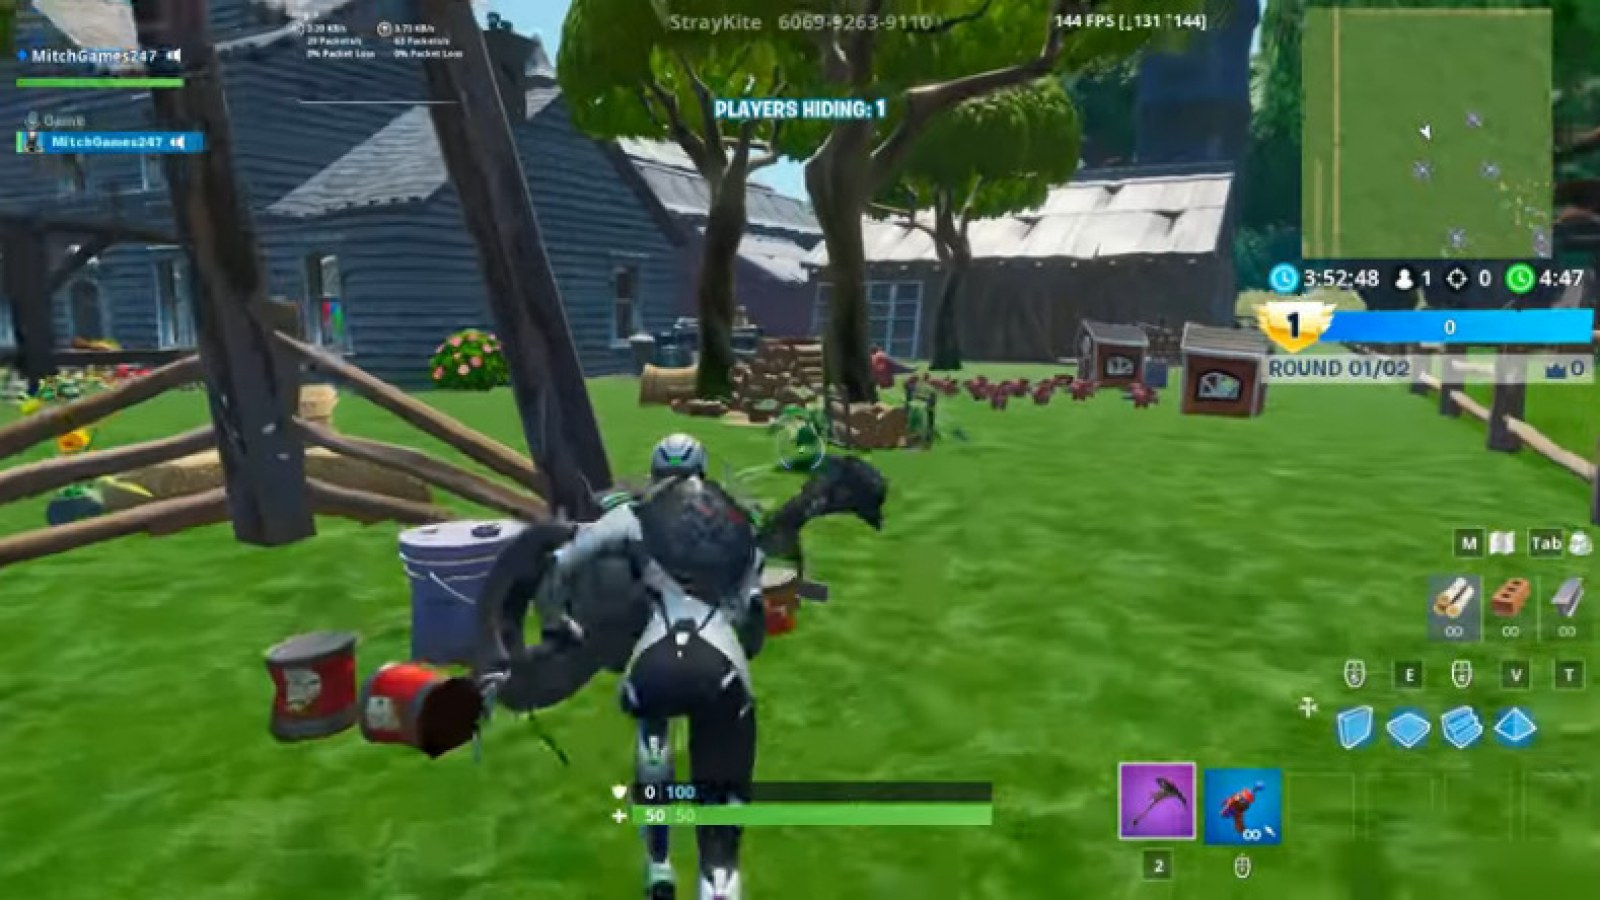 Fortnite' Prop Hunt Map Codes - 6 Best Codes to Try Right Now